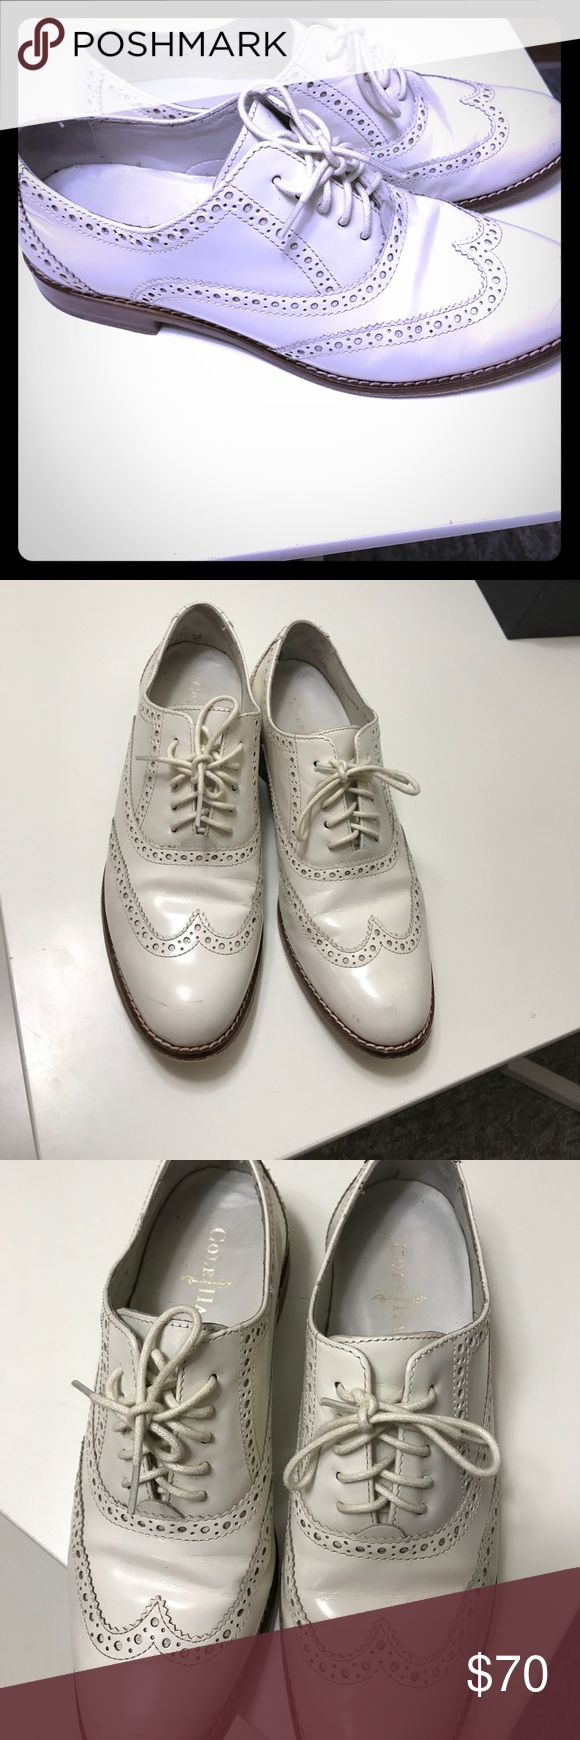 Cole Haan Womens Jagger Saddle Oxford Shoes -7 Cole Haan Womens Jagger Saddle Oxford Shoes -Smooth burnished calfskin upper. Cap toe. Fully leather lined. Fully padded leather sock lining. Mini stacked heel. Excellent Condition.not much use Cole Haan Shoes